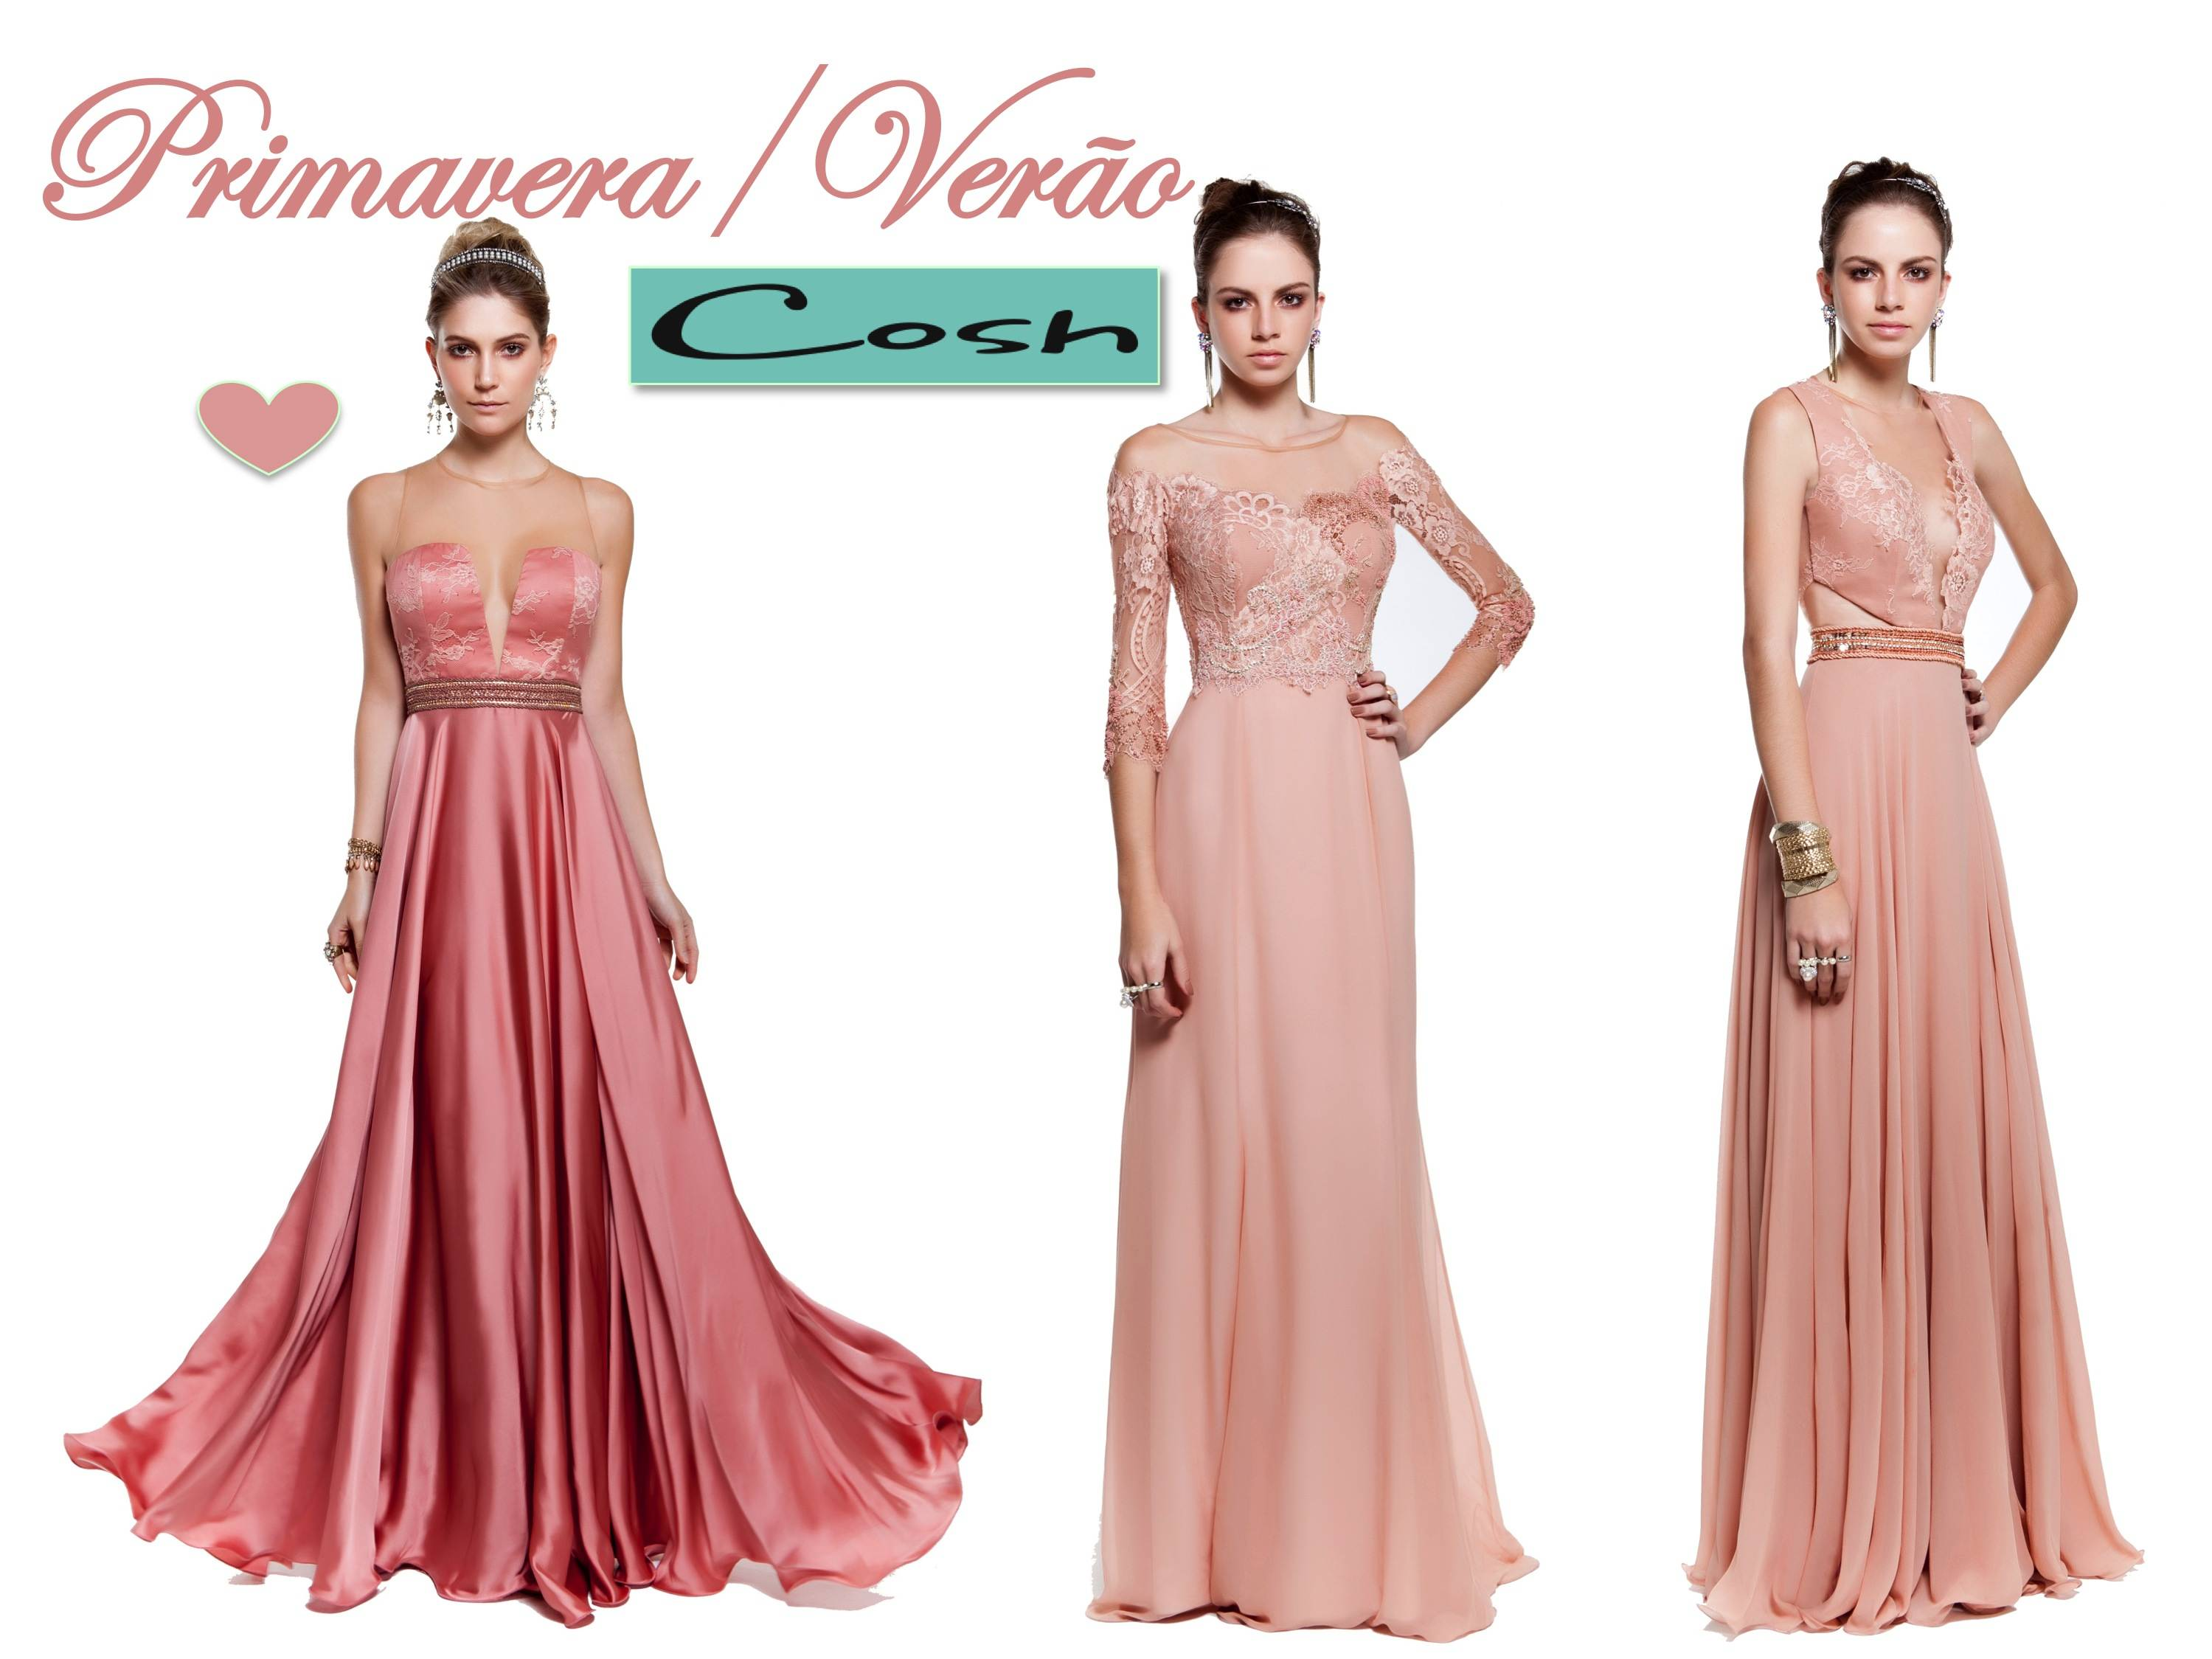 blog-love-shoes-verao-2014-cosh-vestidos-festa